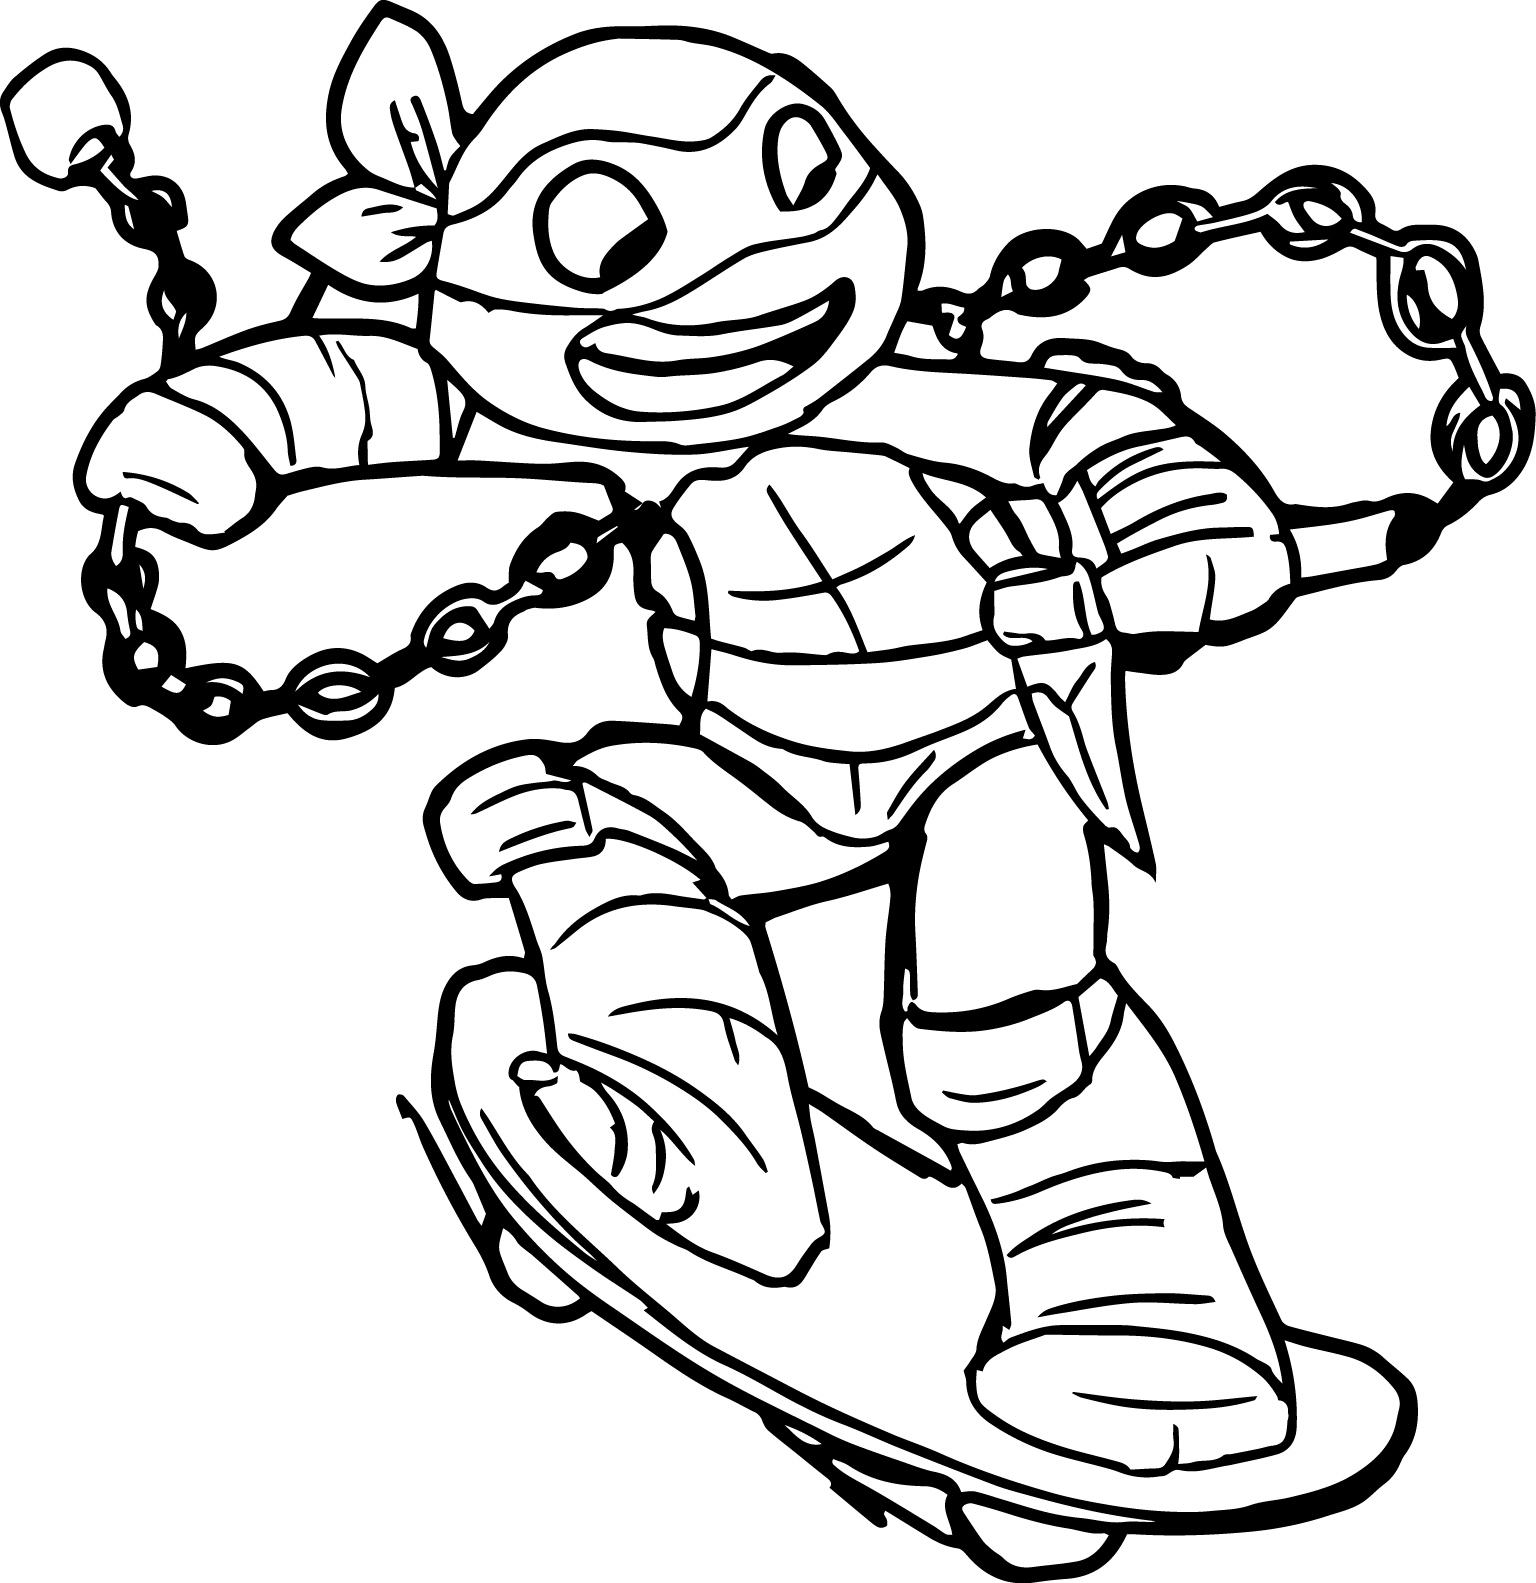 tortoise colouring pictures turtles to download for free turtles kids coloring pages pictures tortoise colouring